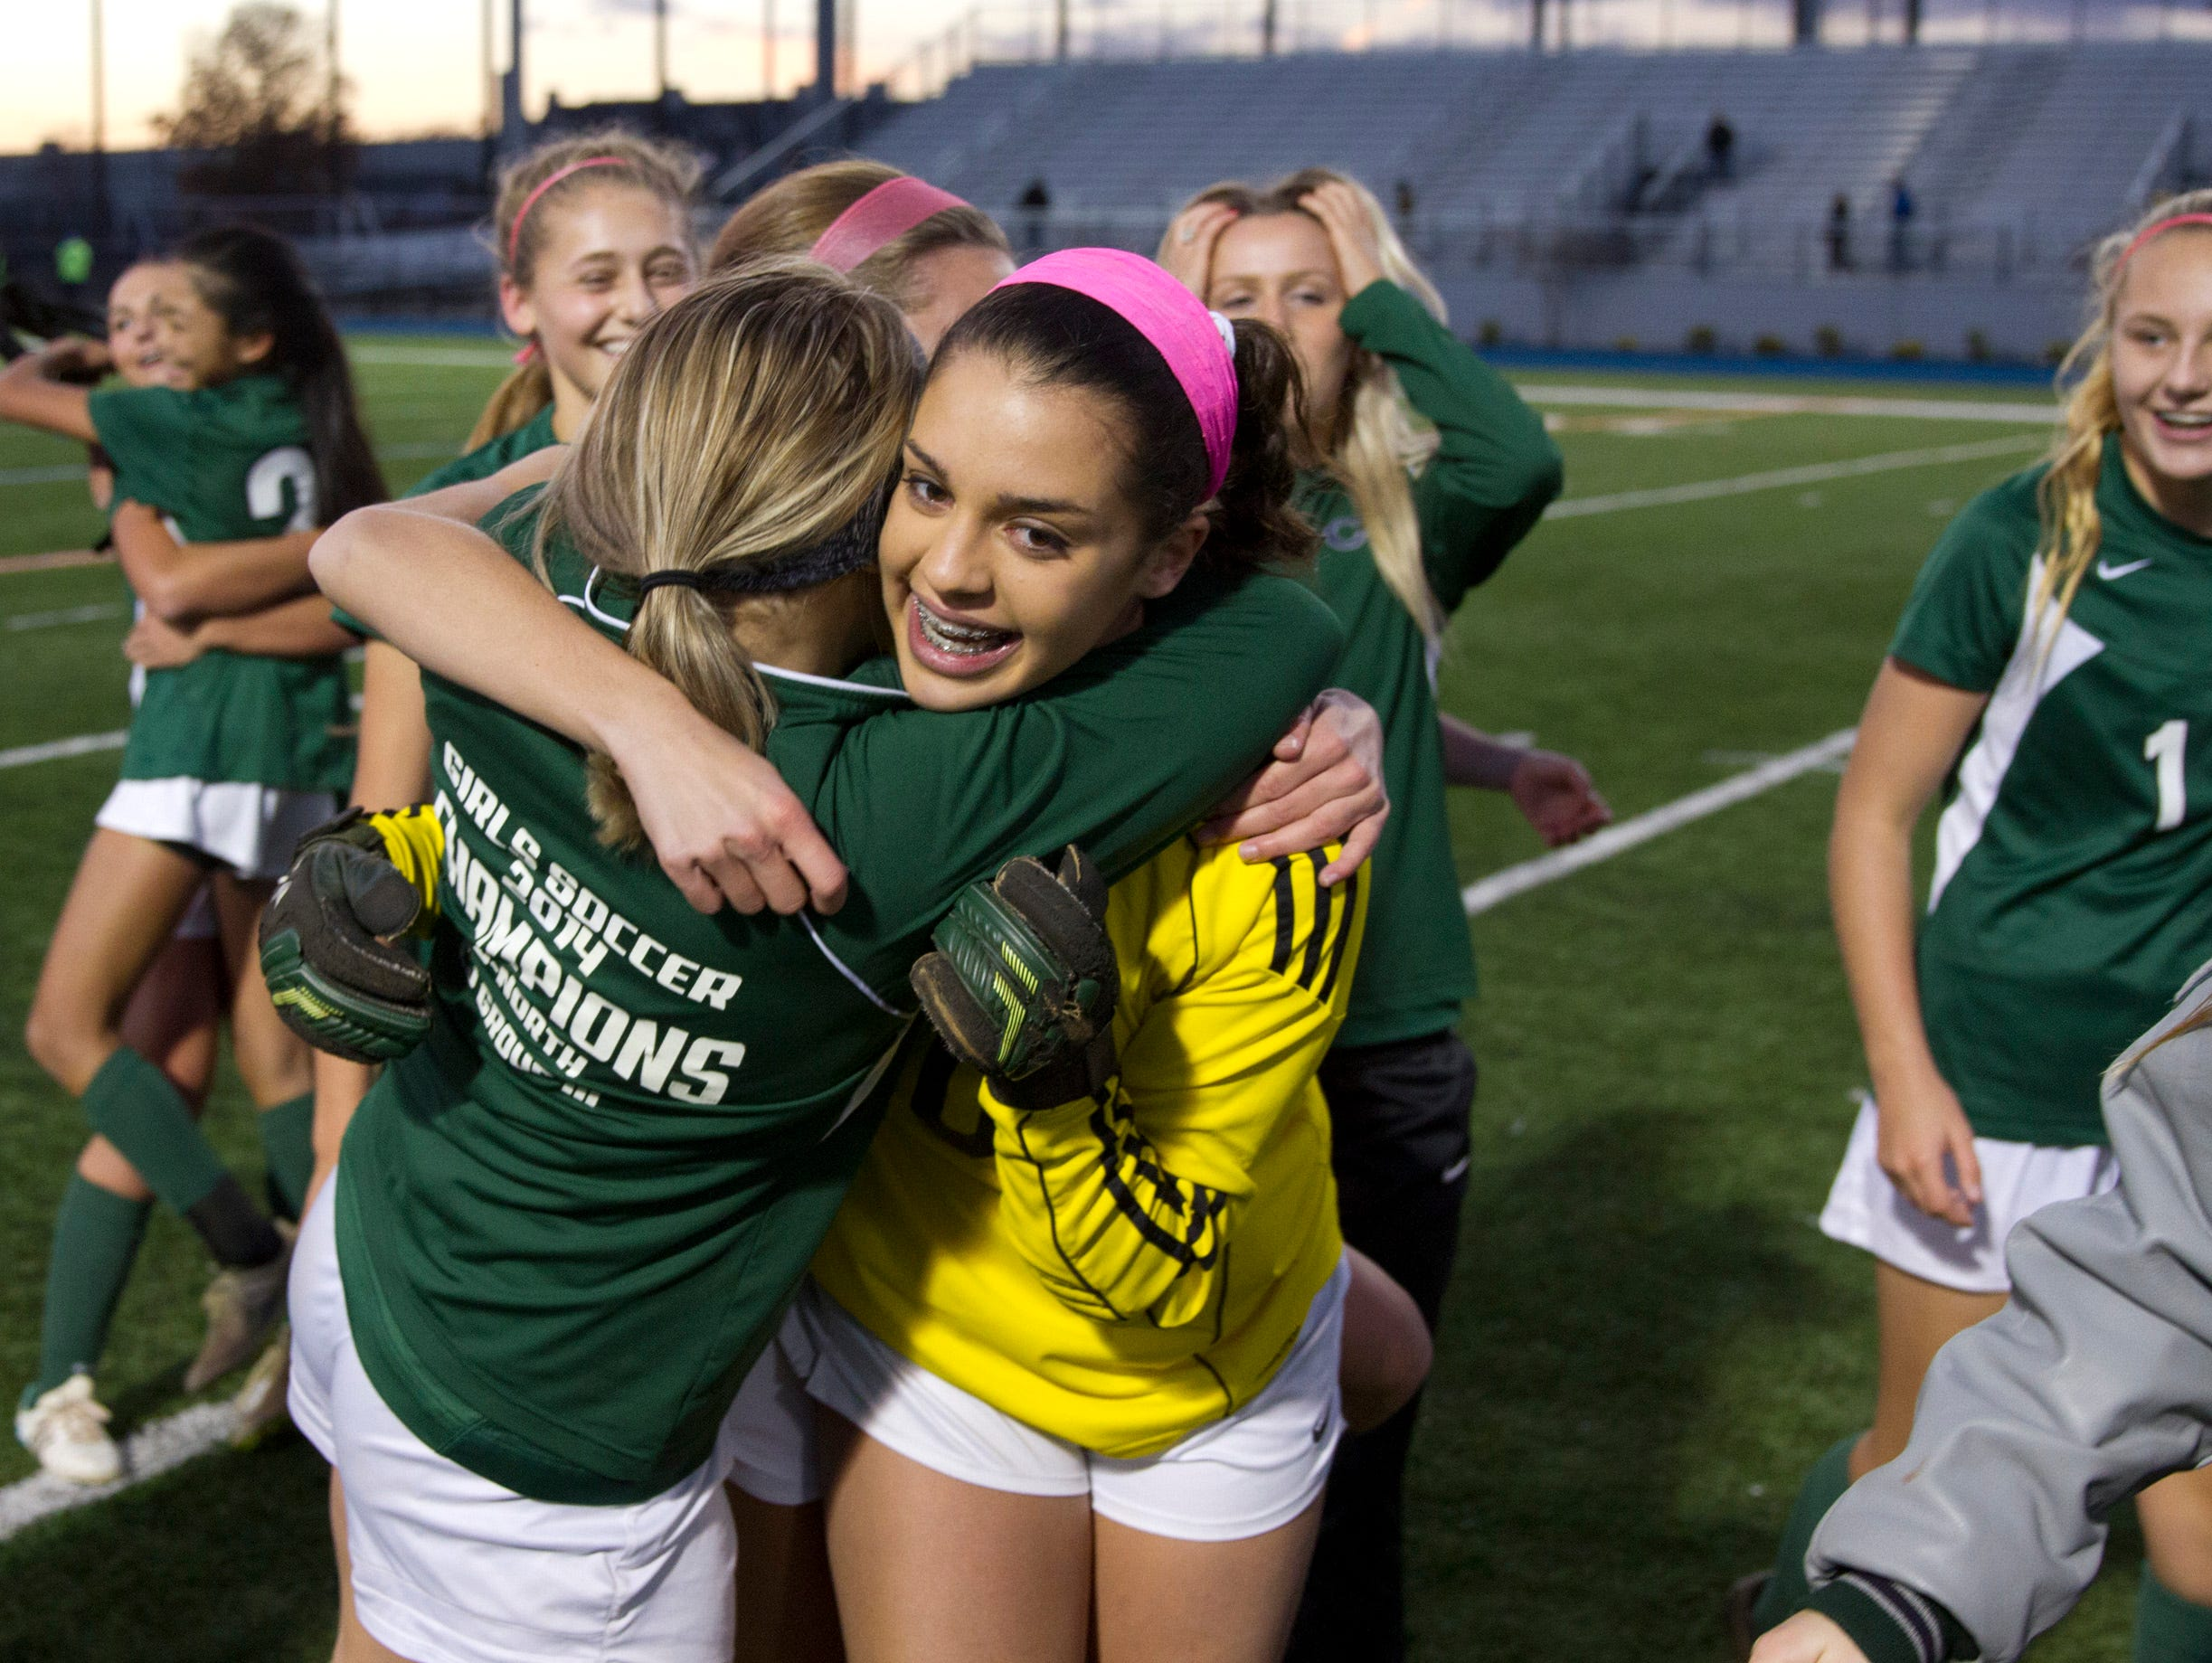 Colts Neck goalie Lauren Feaster who had a great game in shutting out Northern Highlands celebrates with teammates. Colt Necks Girls Soccer vs Northern Highlands in NJSIAA State Group III Championship at Kean University on November 21, 2015 in Union, NJ.